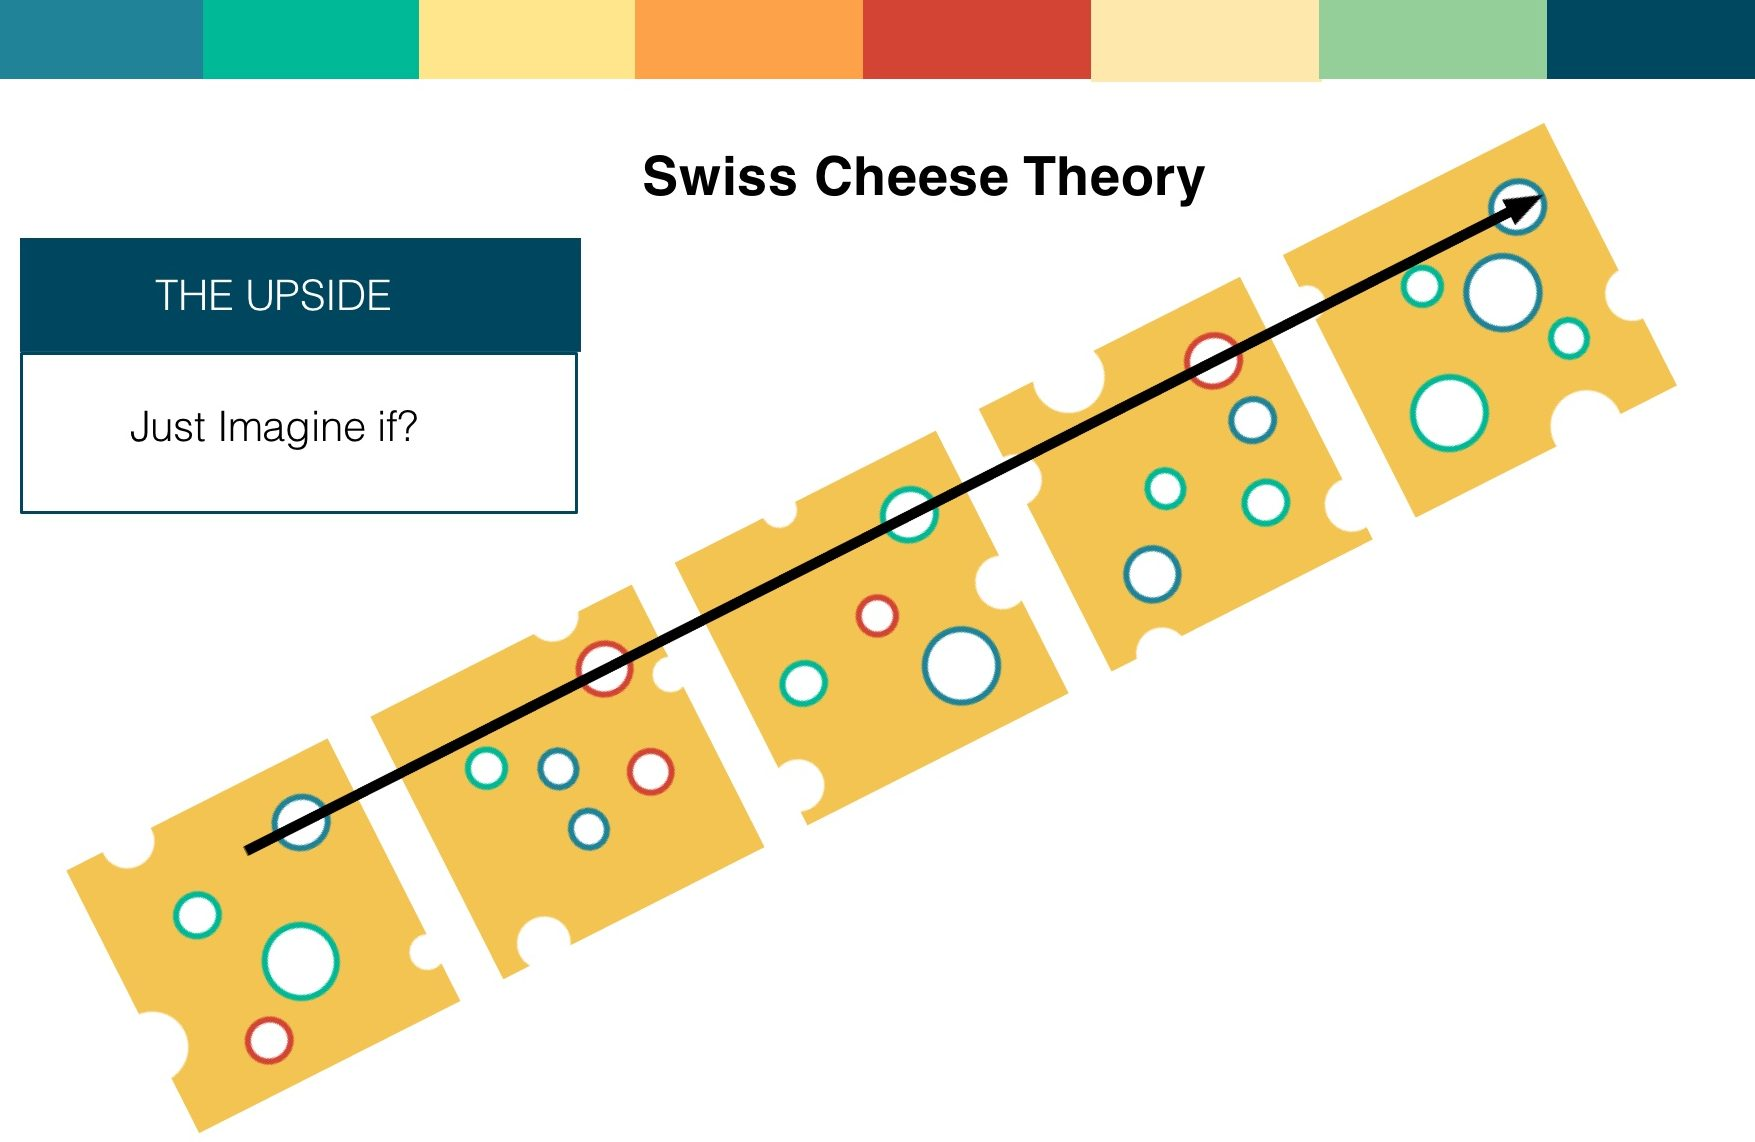 Why I needed that Coffee, but Swiss Cheese too!